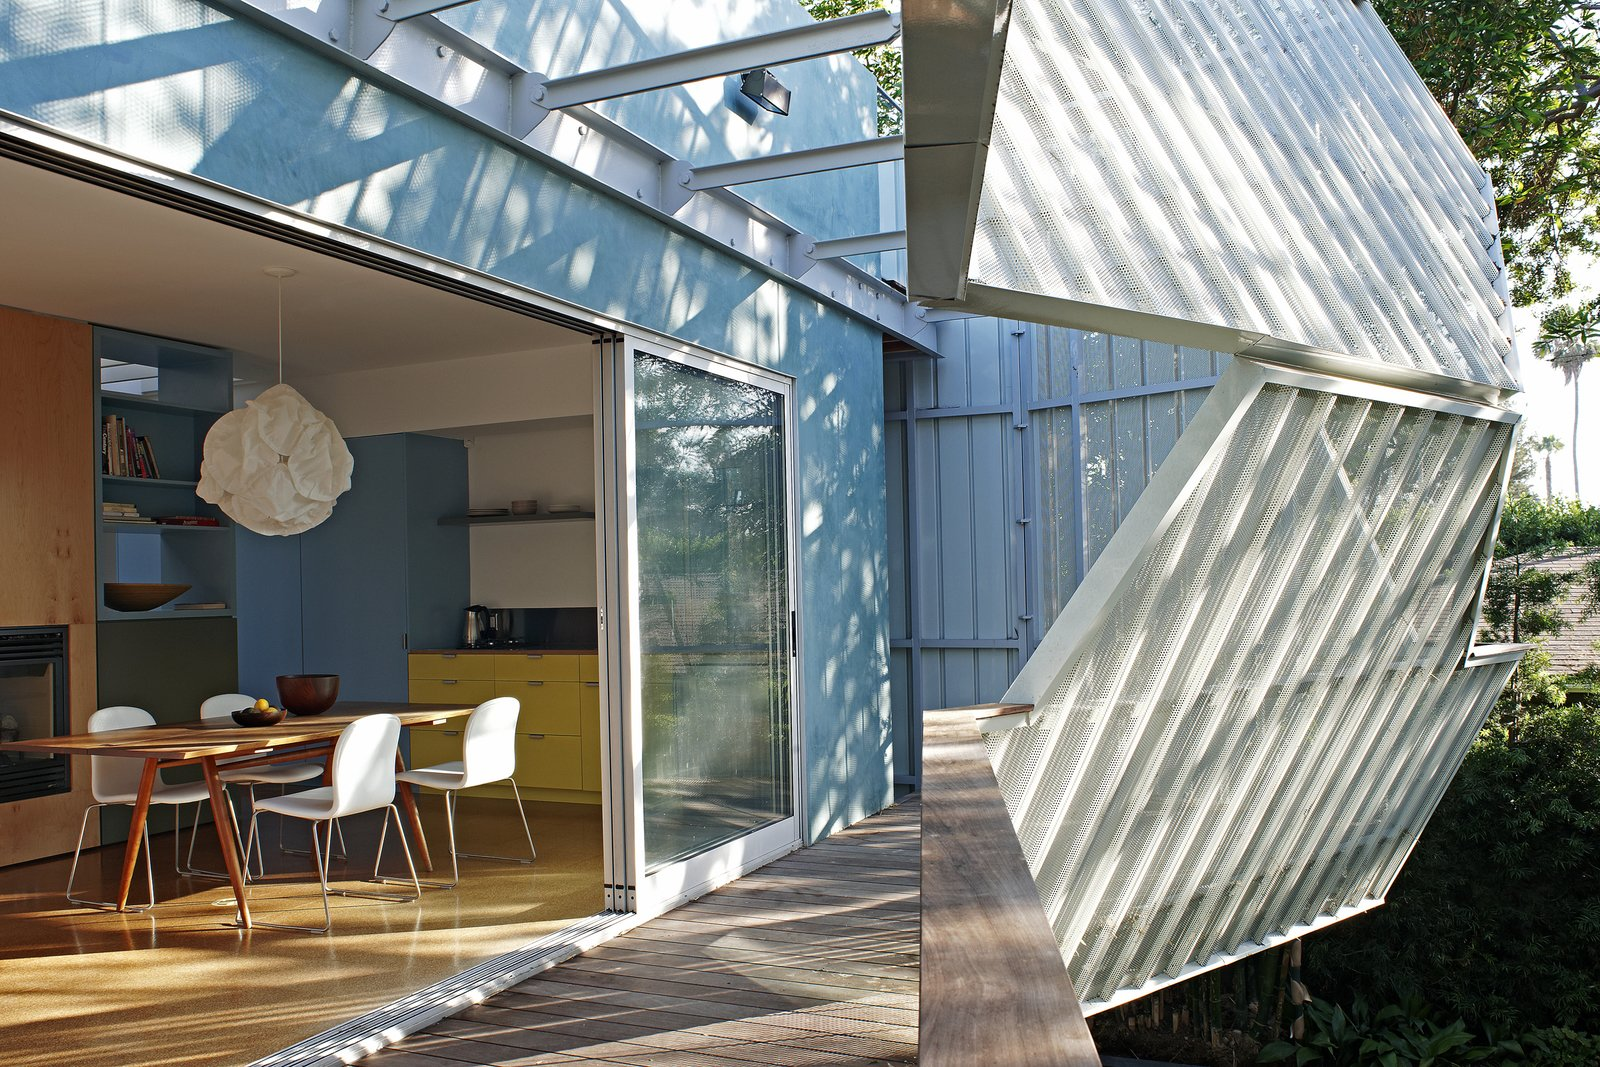 Photo 5 of 10 in A Perforated Screen Brings Privacy and Natural Light to This Bold Venice Home